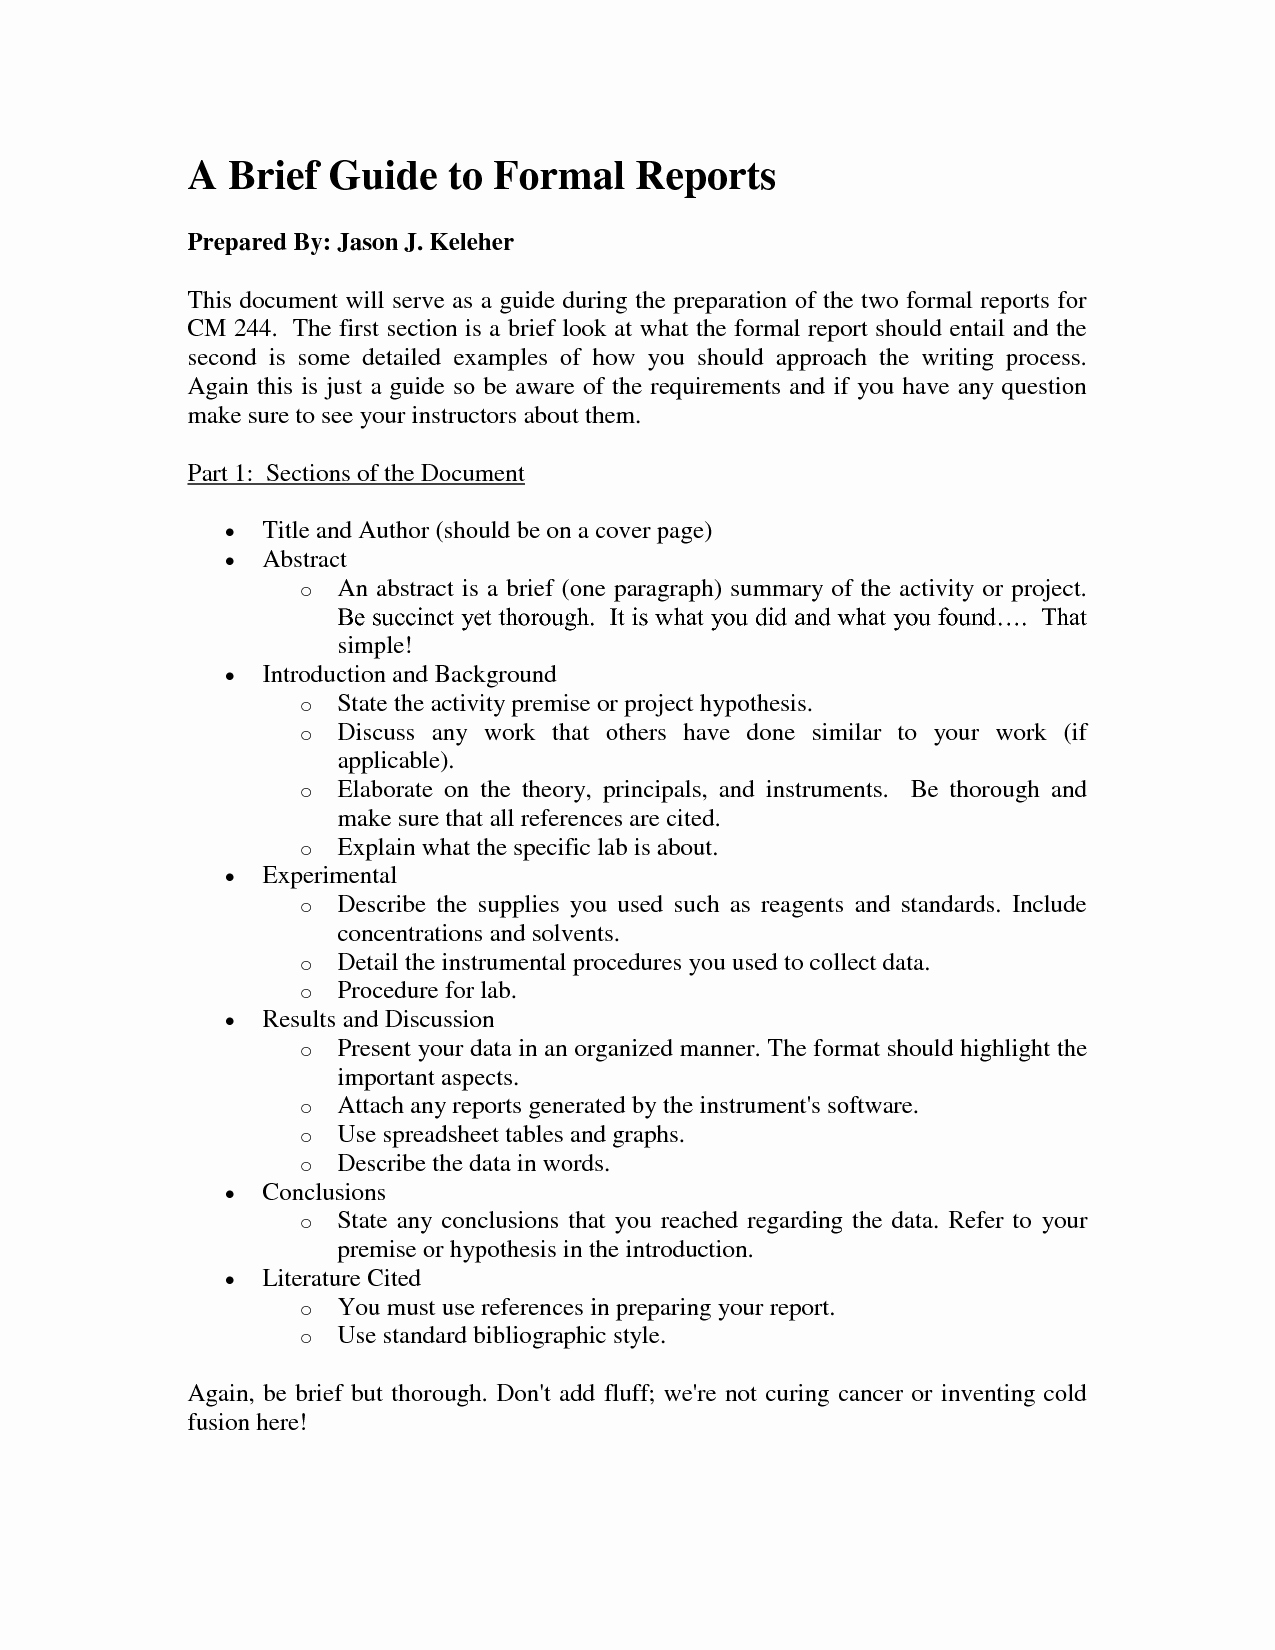 Example Of A Short Memo New Best S Of A Example Justification Report formal